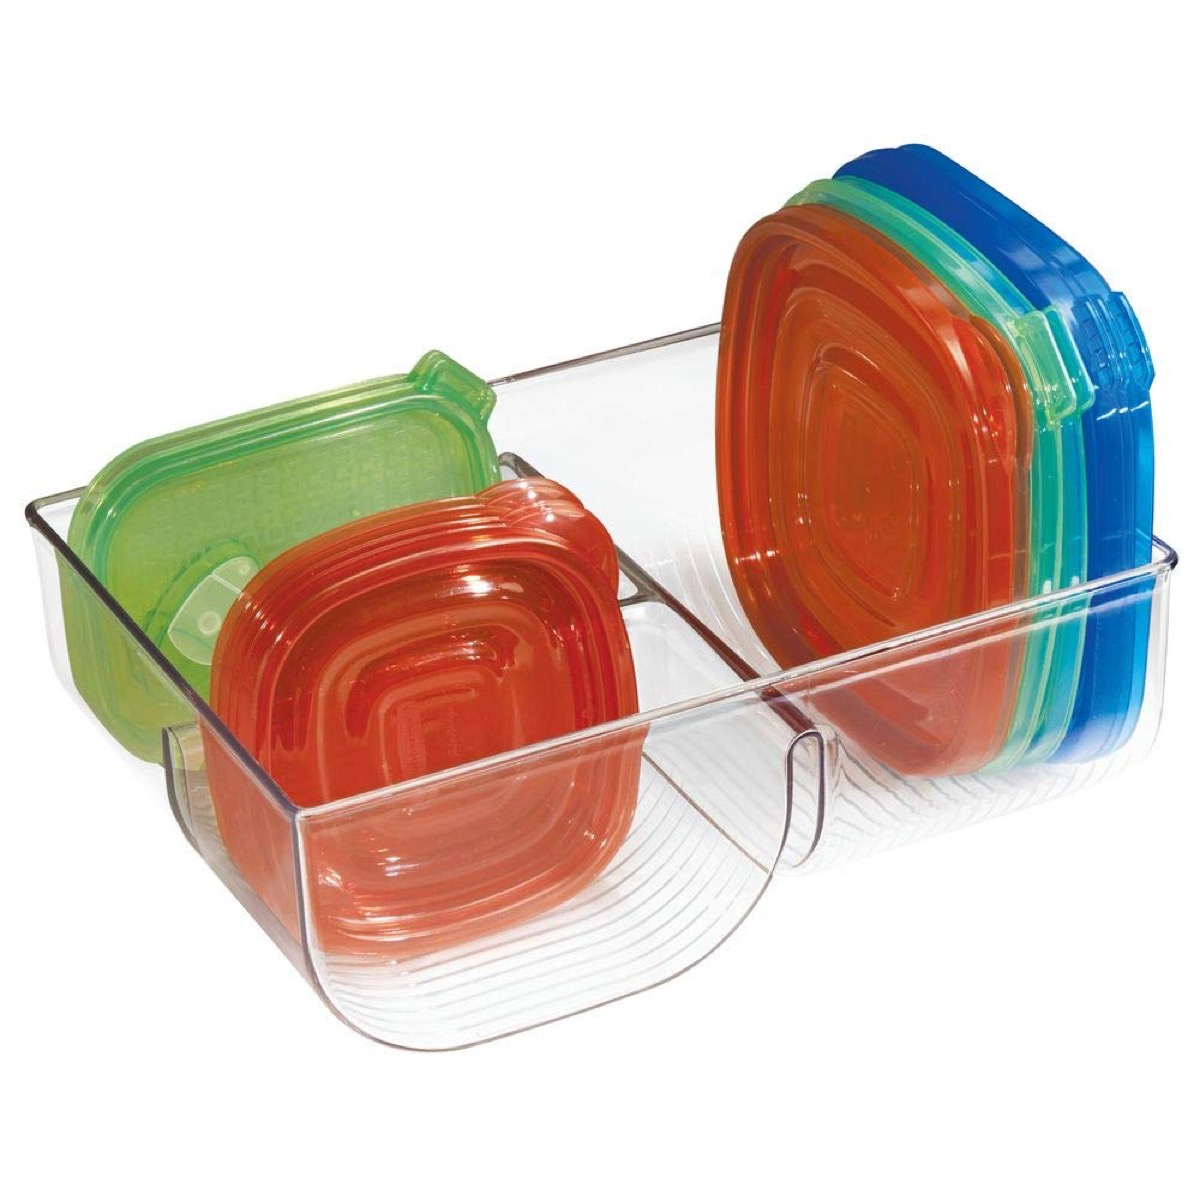 Container lid storage {organizational products on amazon}